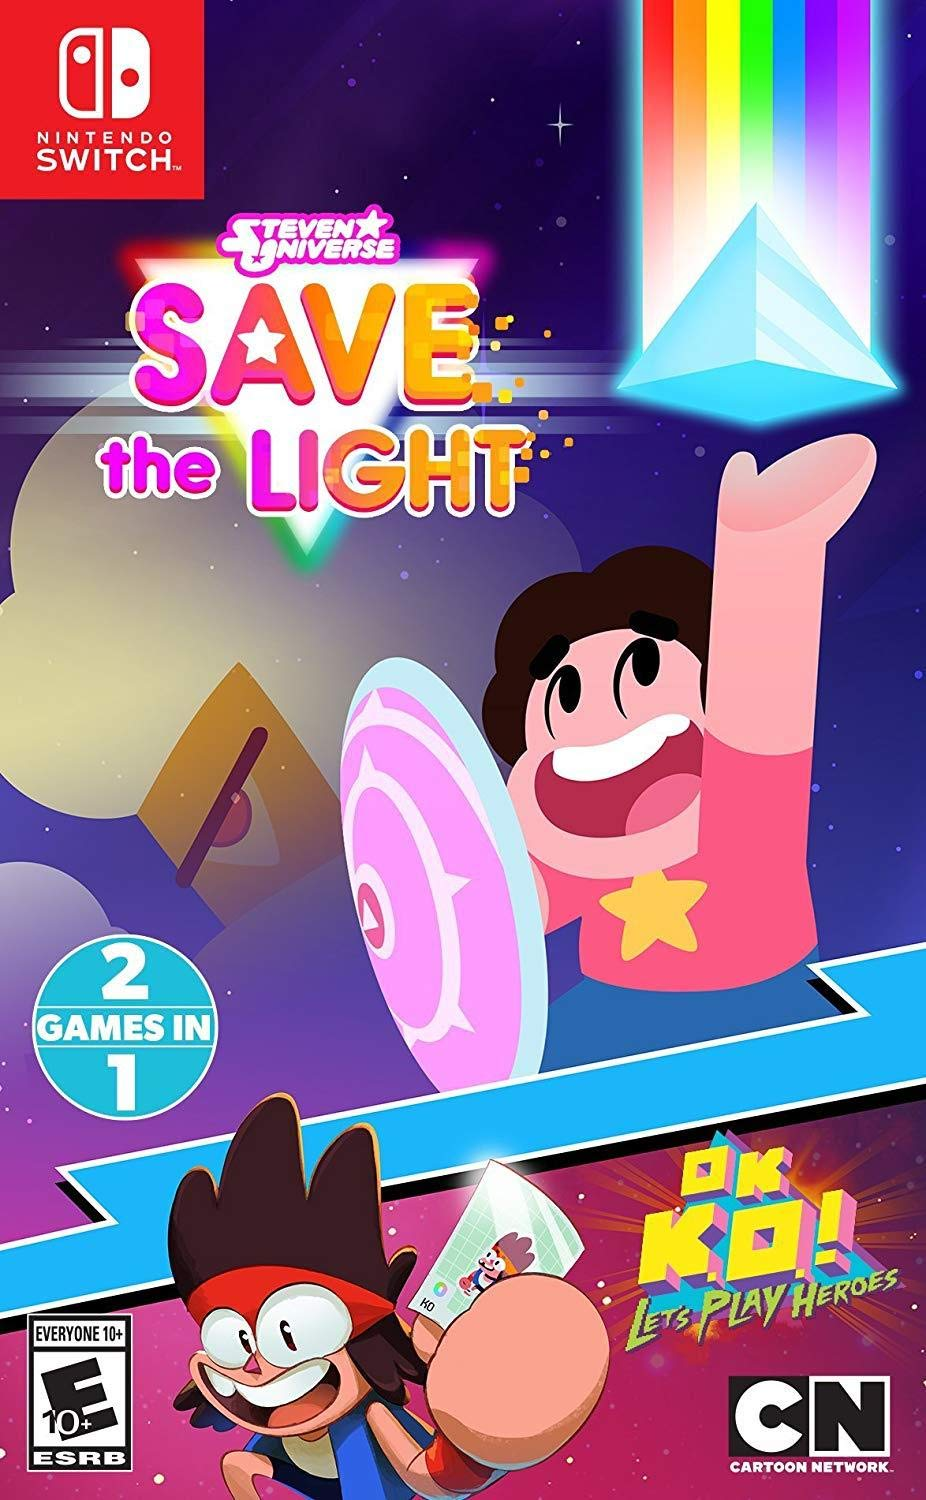 Steven Universe: Save the Light & OK K.O.! Lets Play Heroes for Nintendo Switch USA: Amazon.es: Bandai Namco Games Amer: Cine y Series TV